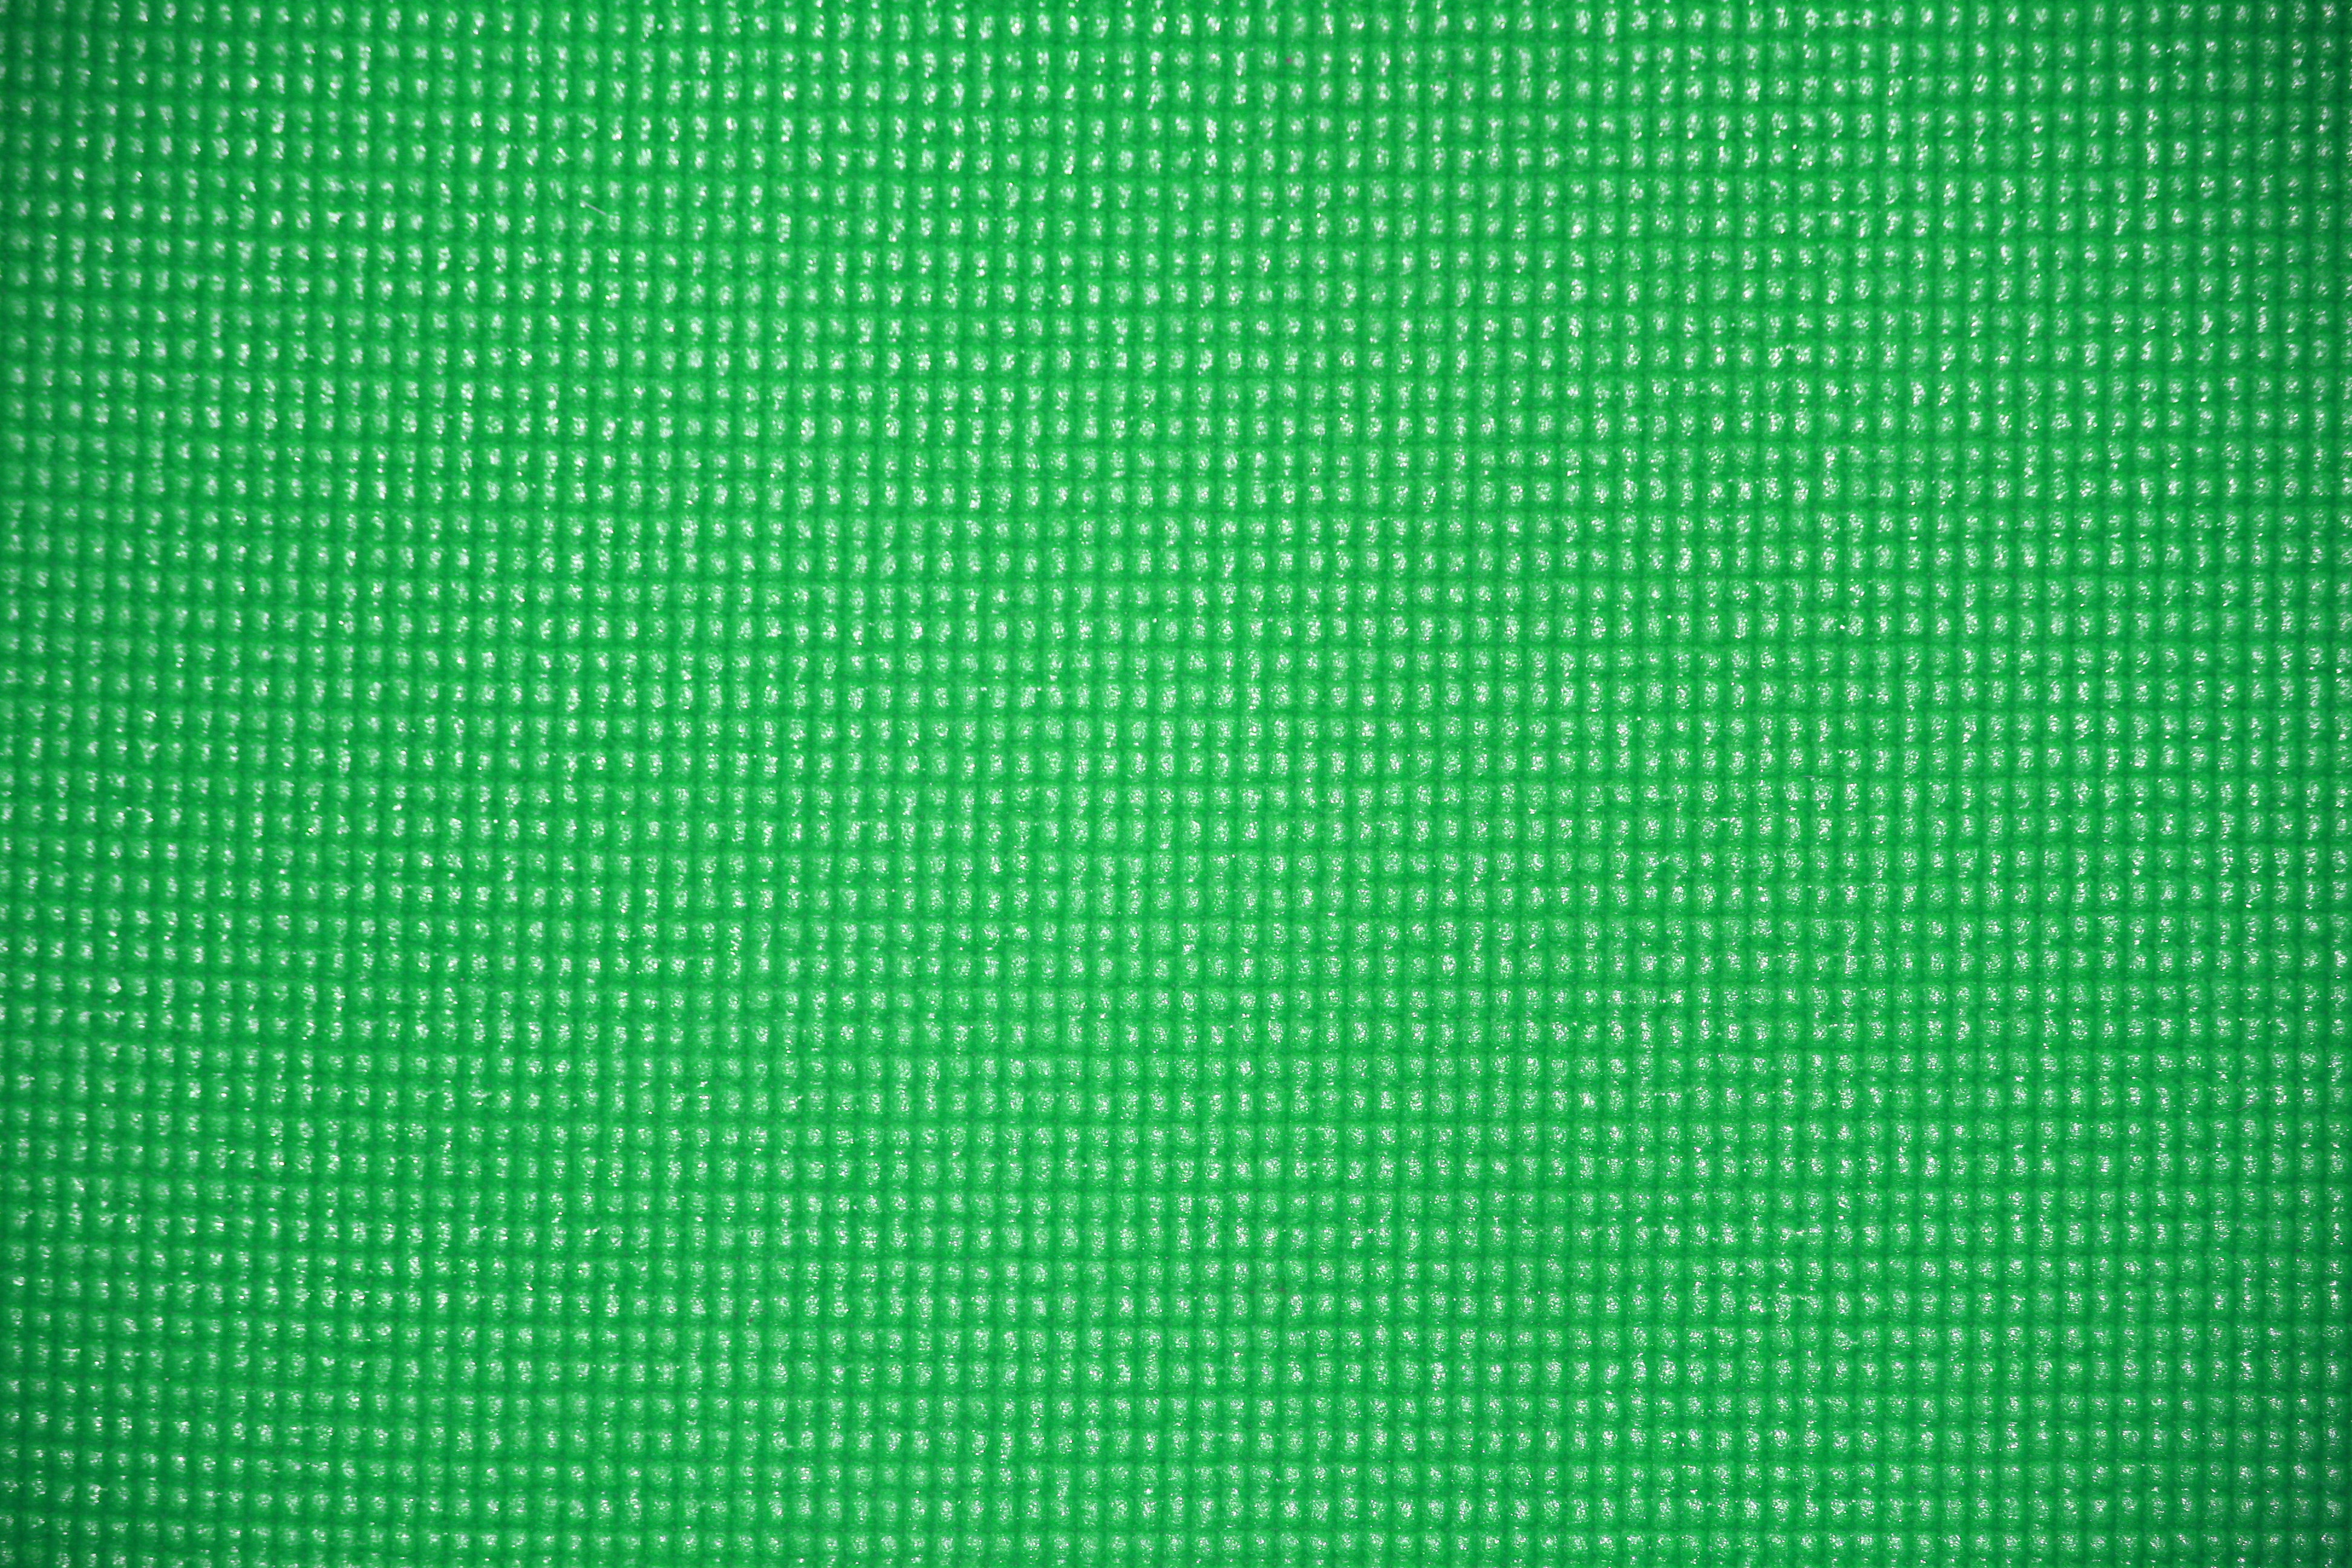 Green Yoga Exercise Mat Texture Picture Free Photograph